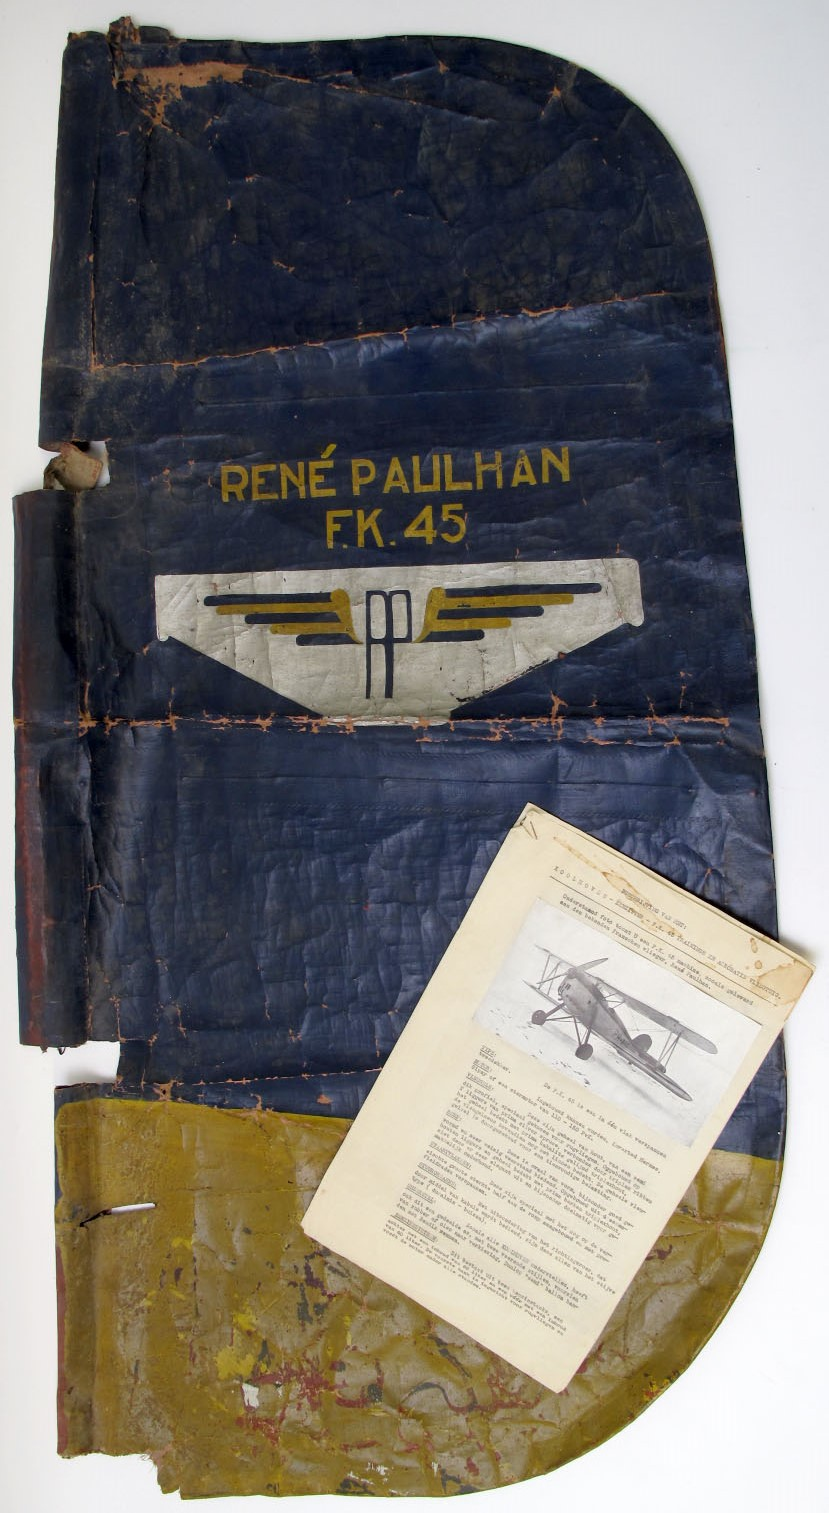 Lot 35 - Rare and Historic Aircraft Tail Fin Canvas From the only Koolhoven F.K.45 Aerobatic Biplane Ever